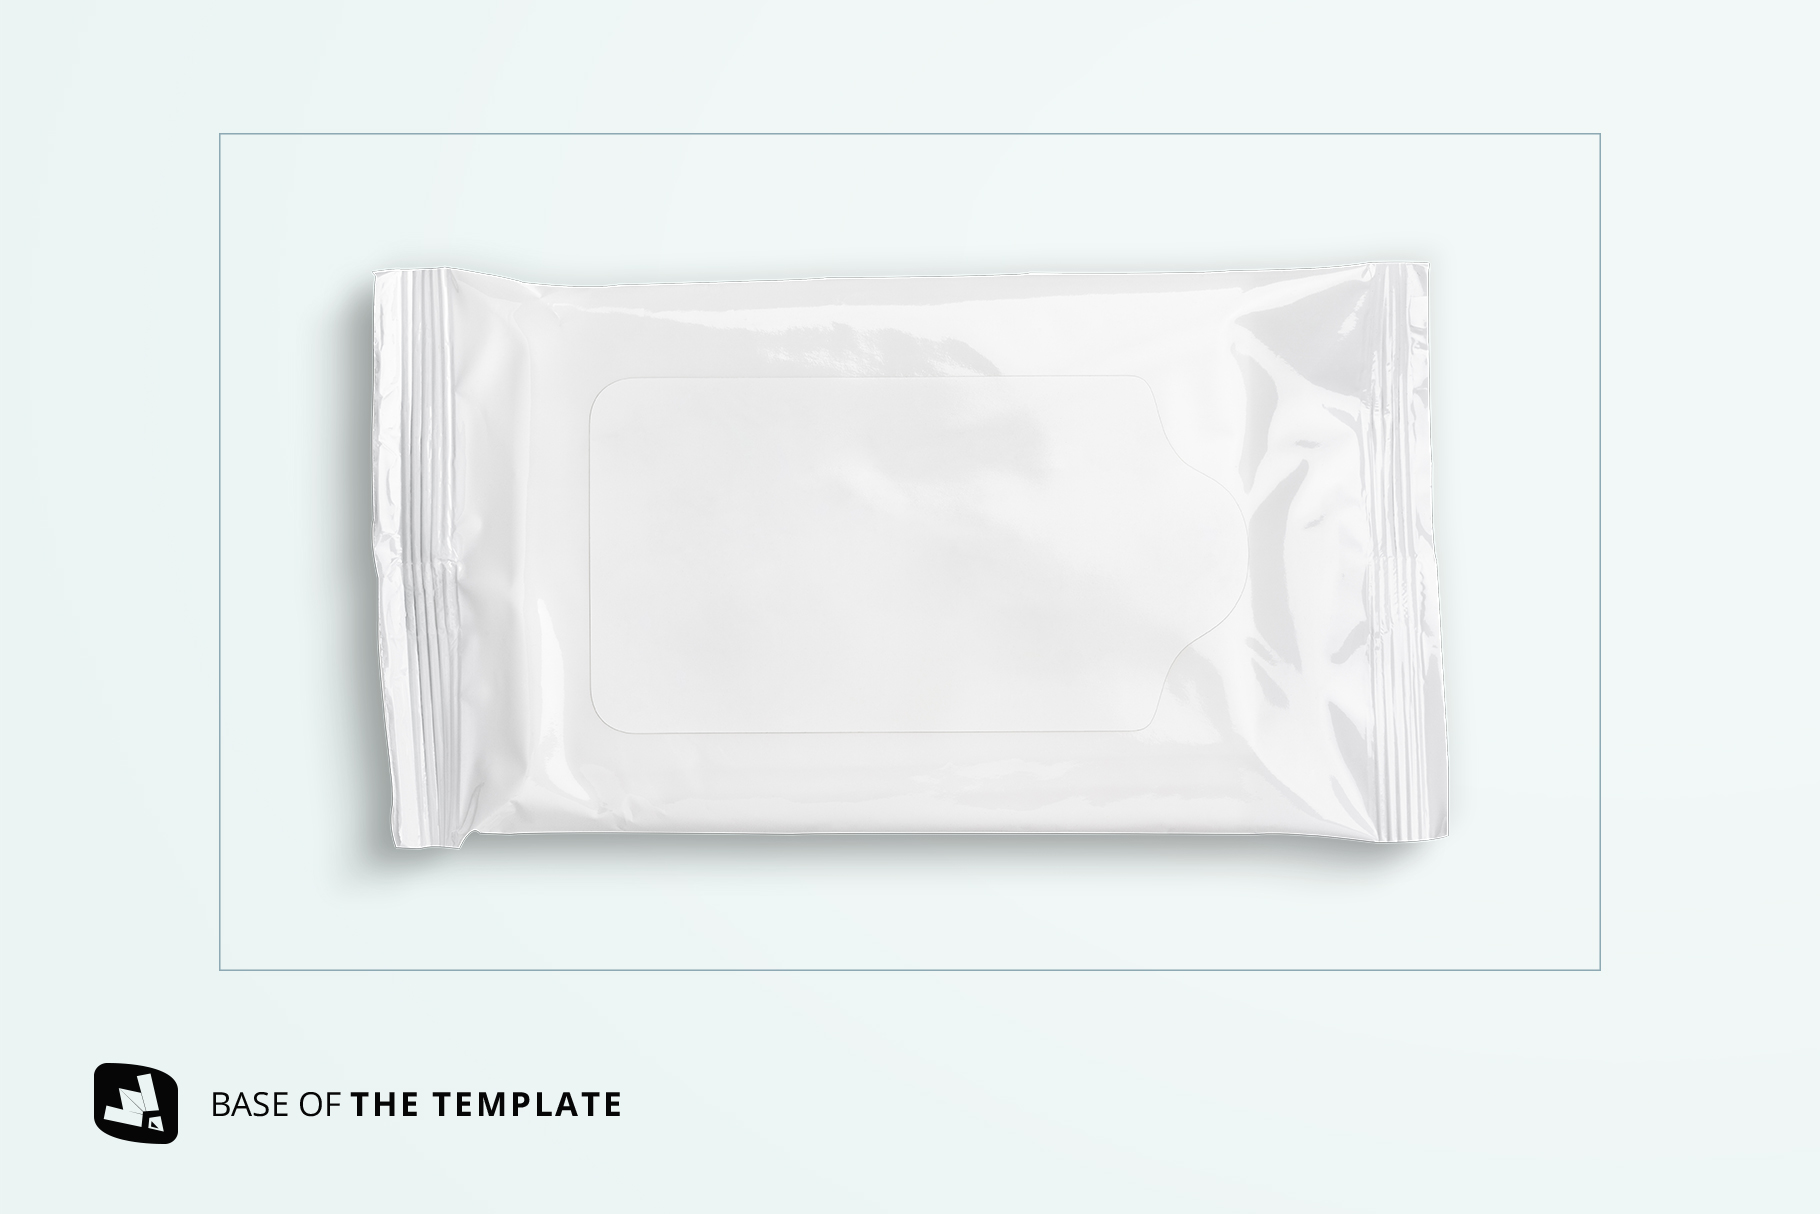 base image of the disposable wipes packaging mockup